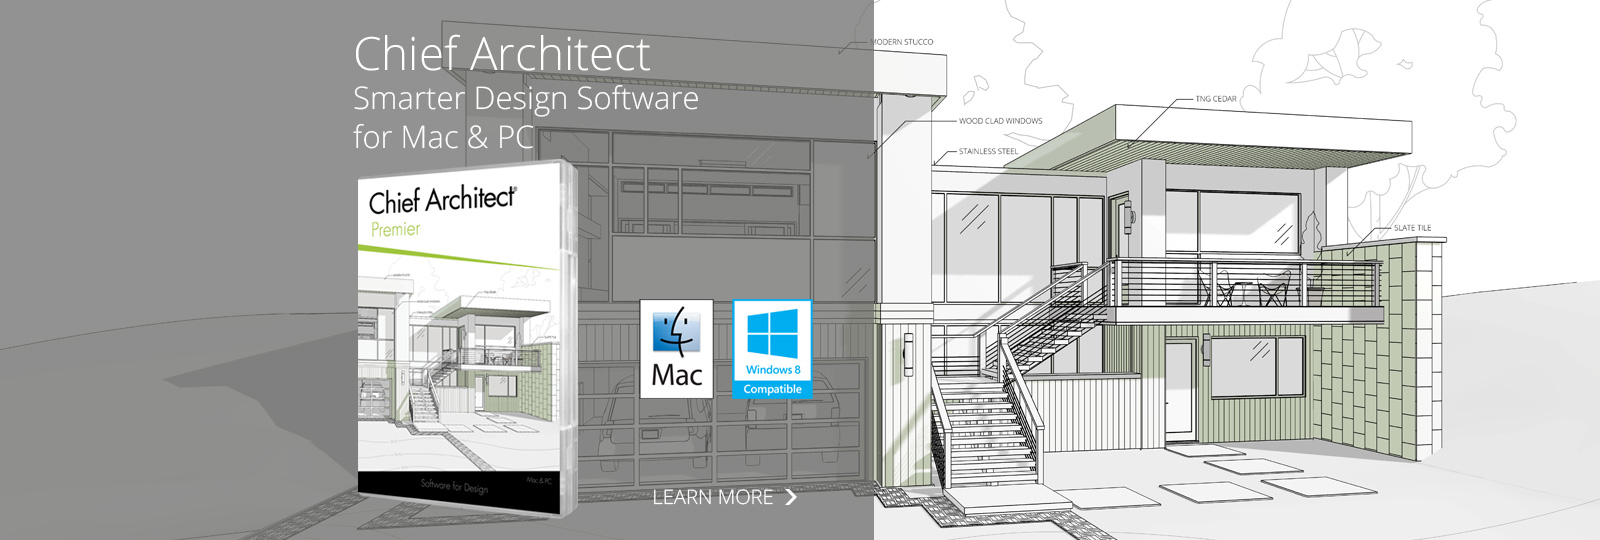 architectural home design software. Automated building tools make home ...